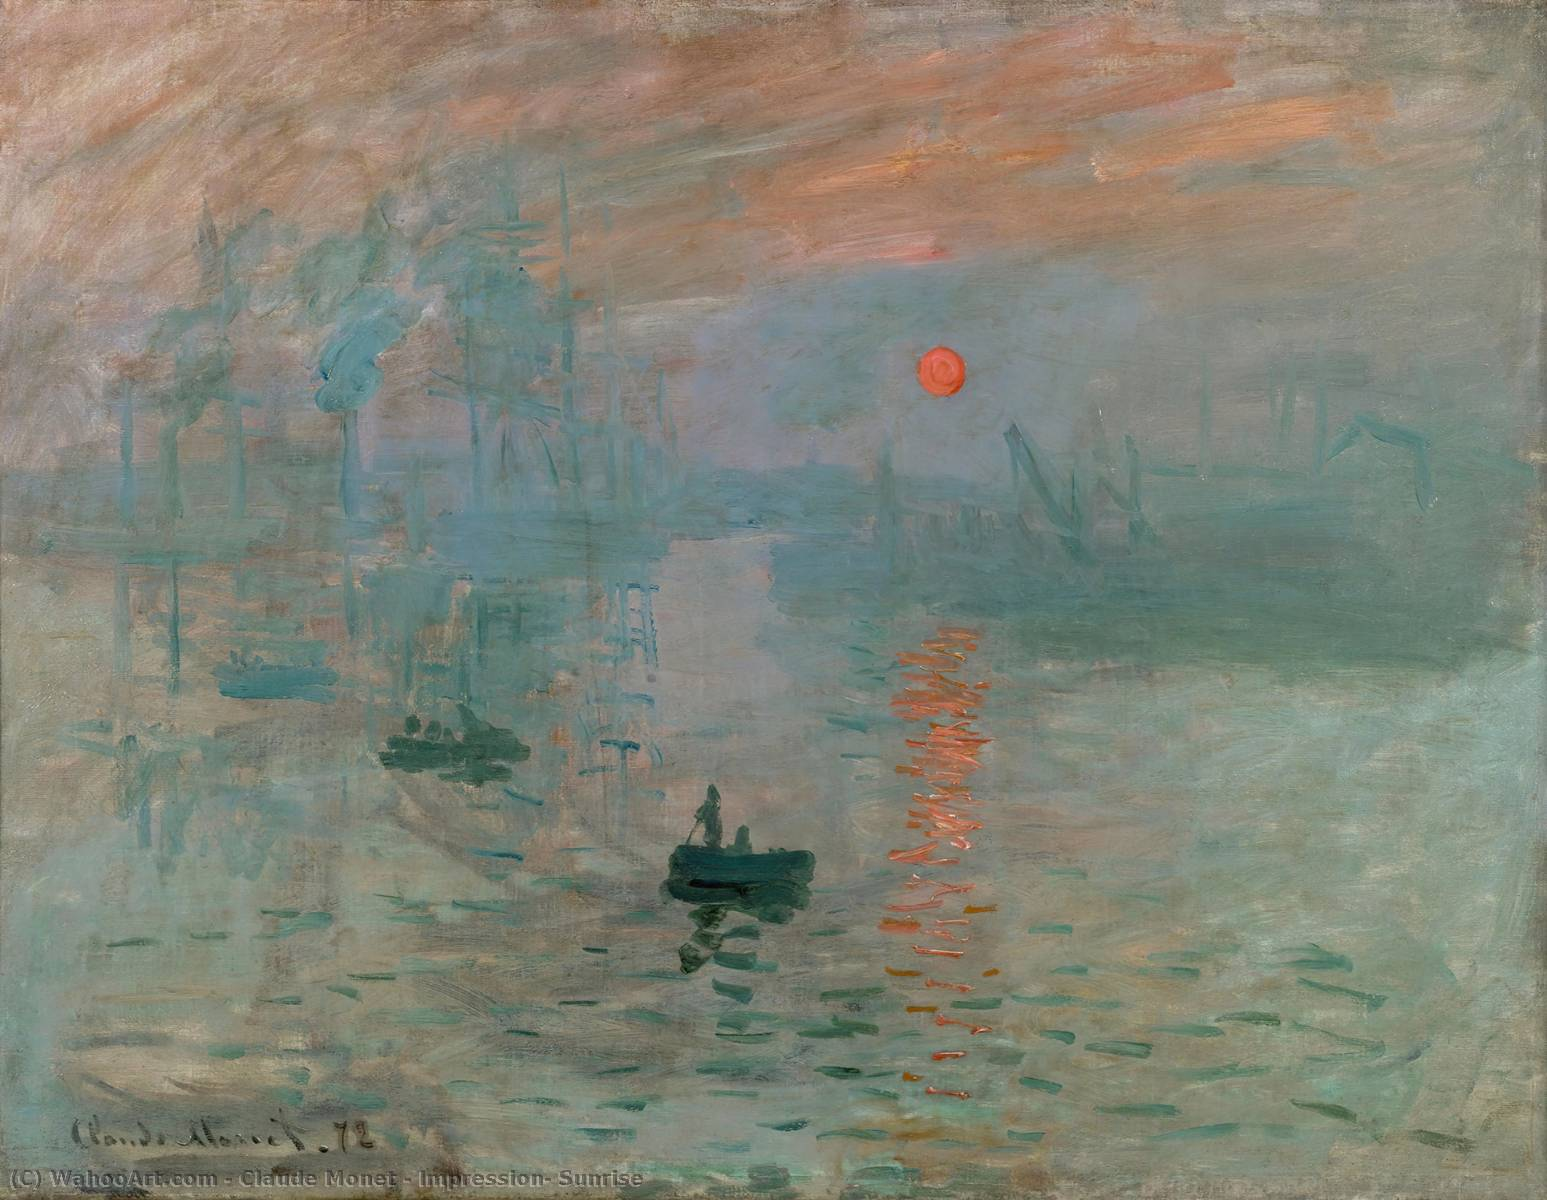 famous painting Impression, Sunrise of Claude Monet